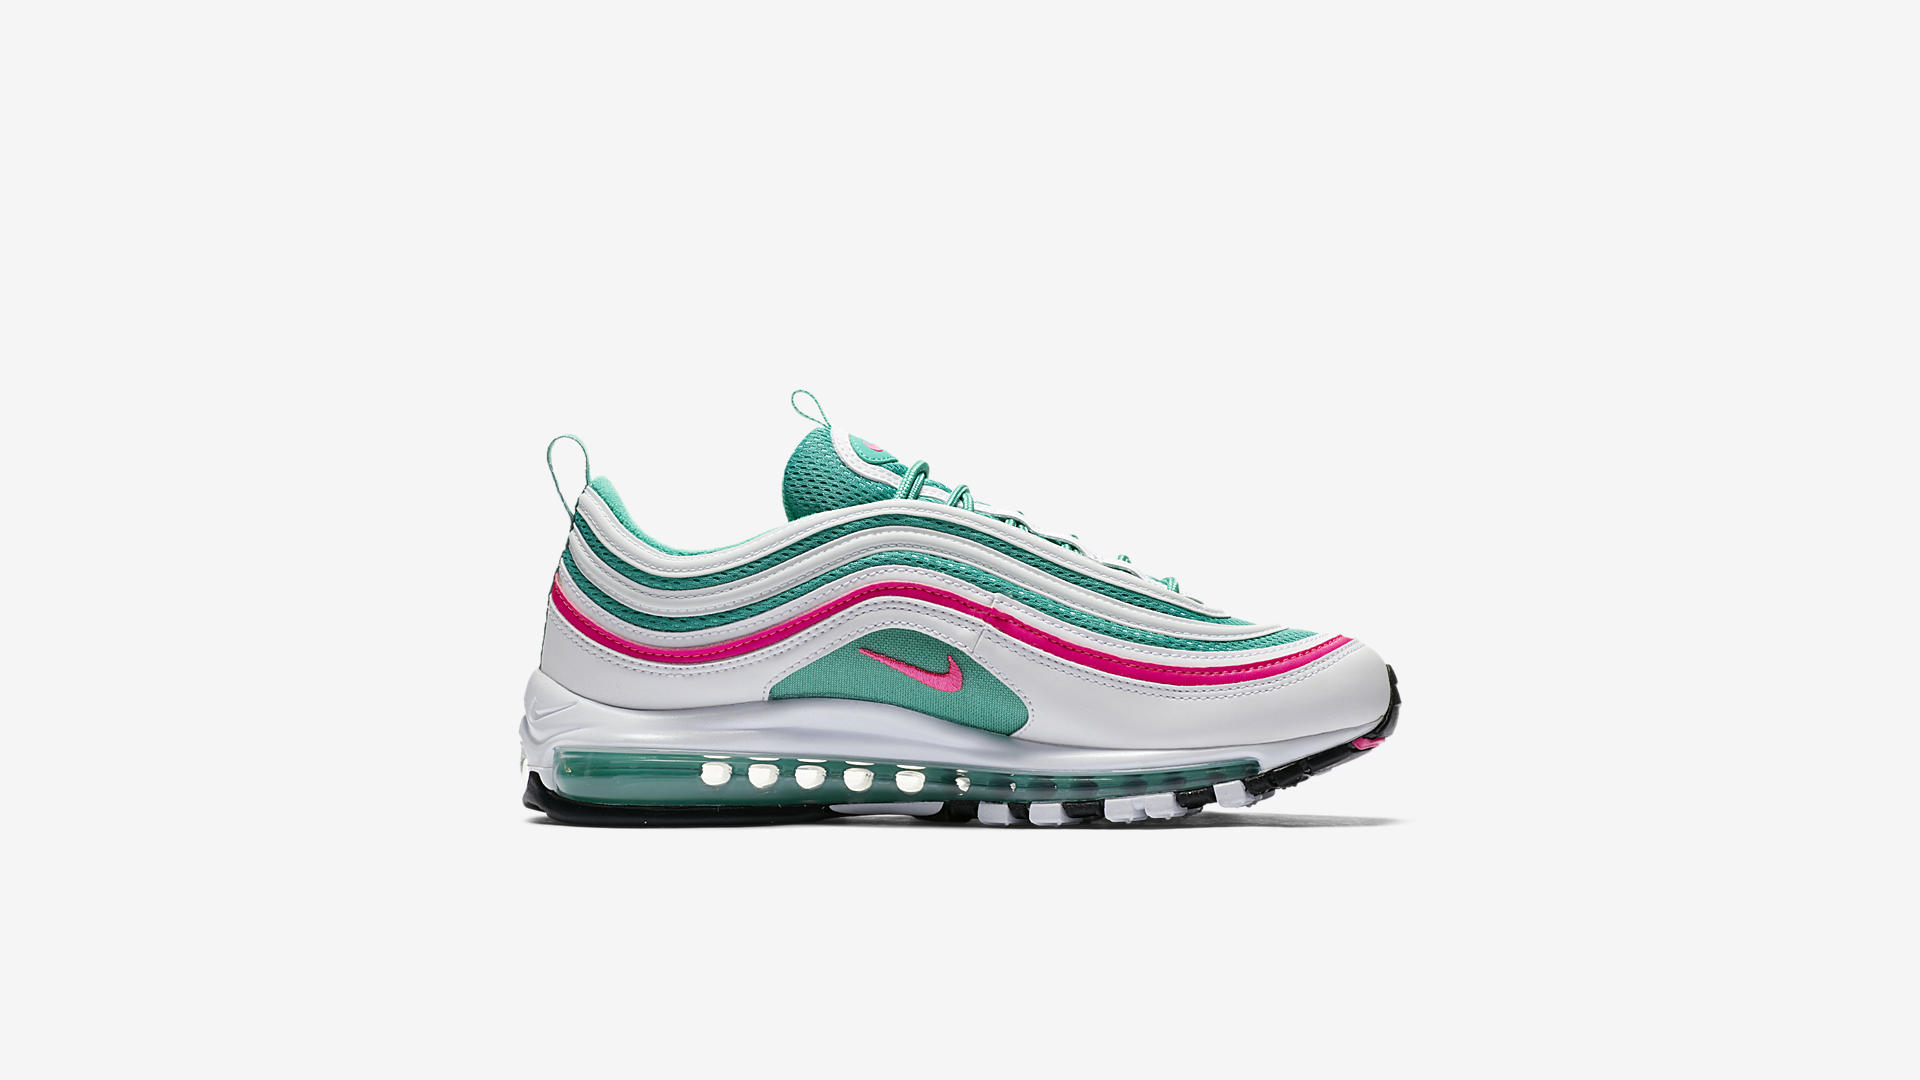 921826 102 Nike Air Max 97 Watermelon 4 1